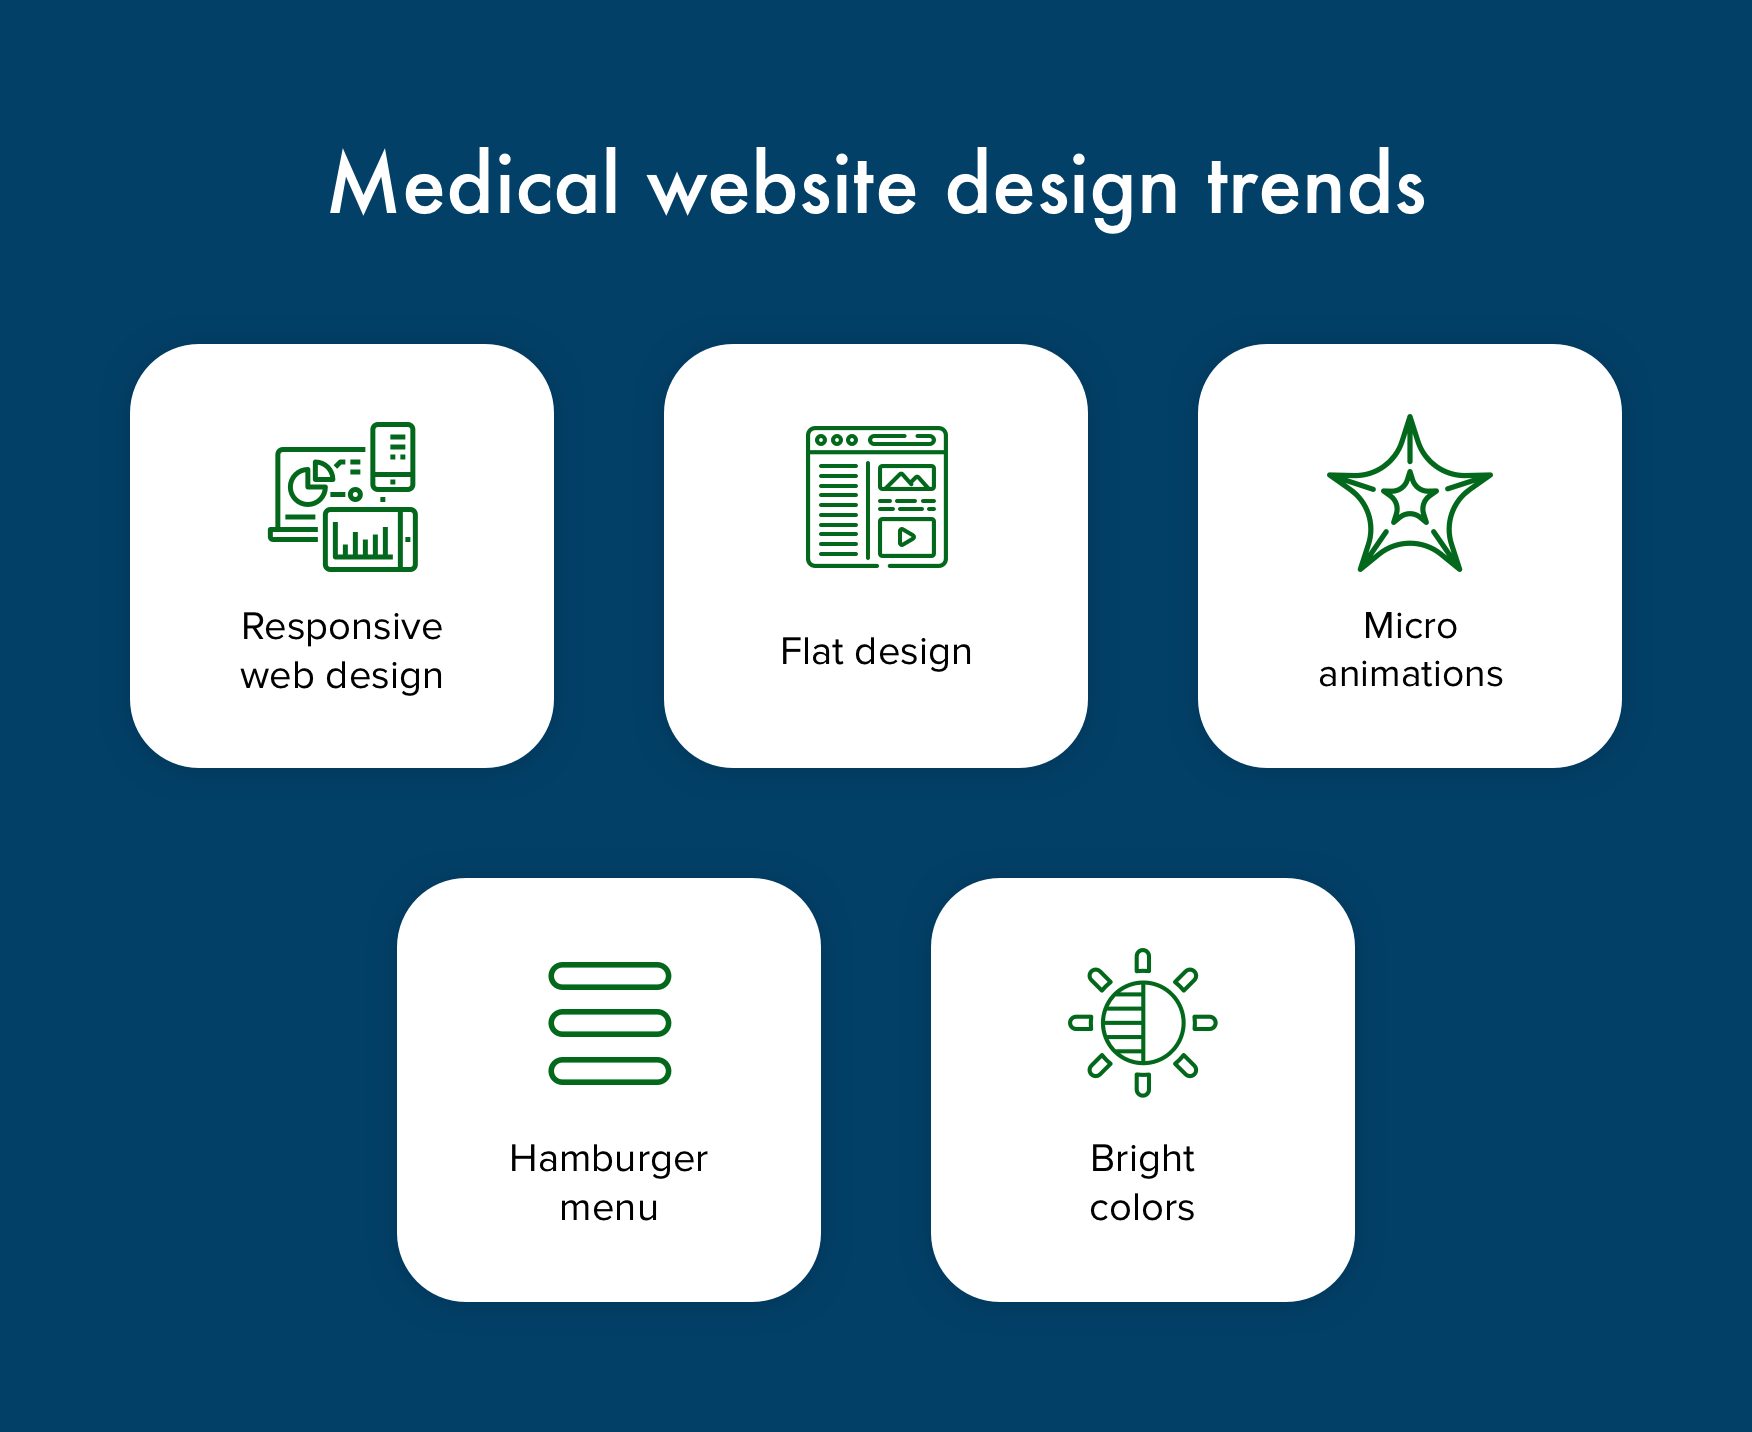 Trends for medical web design